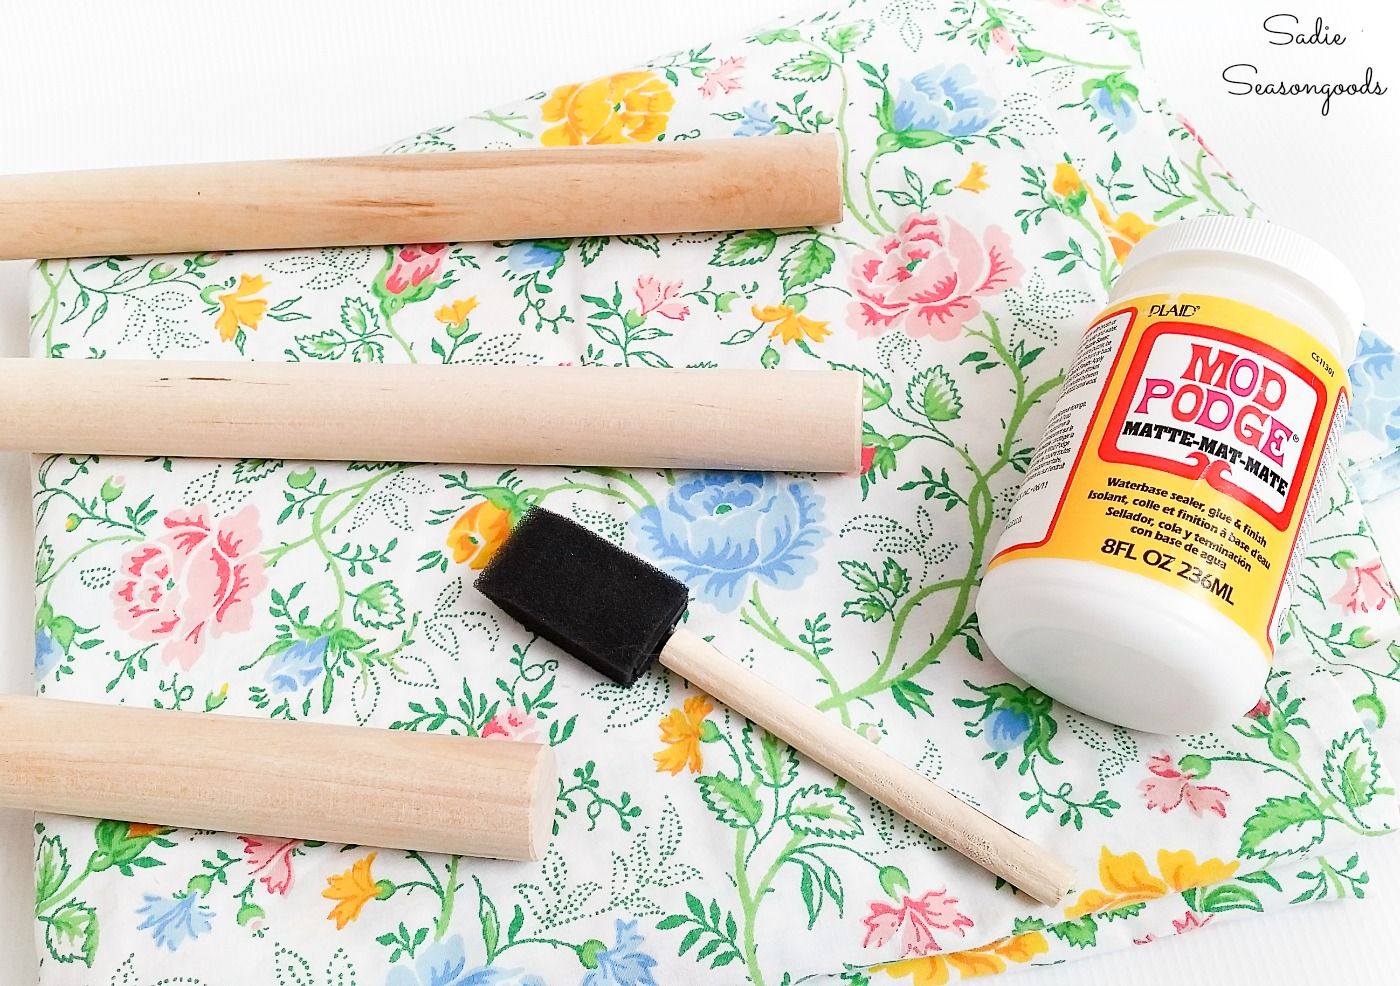 Decoupaging fabric onto wood with vintage sheets